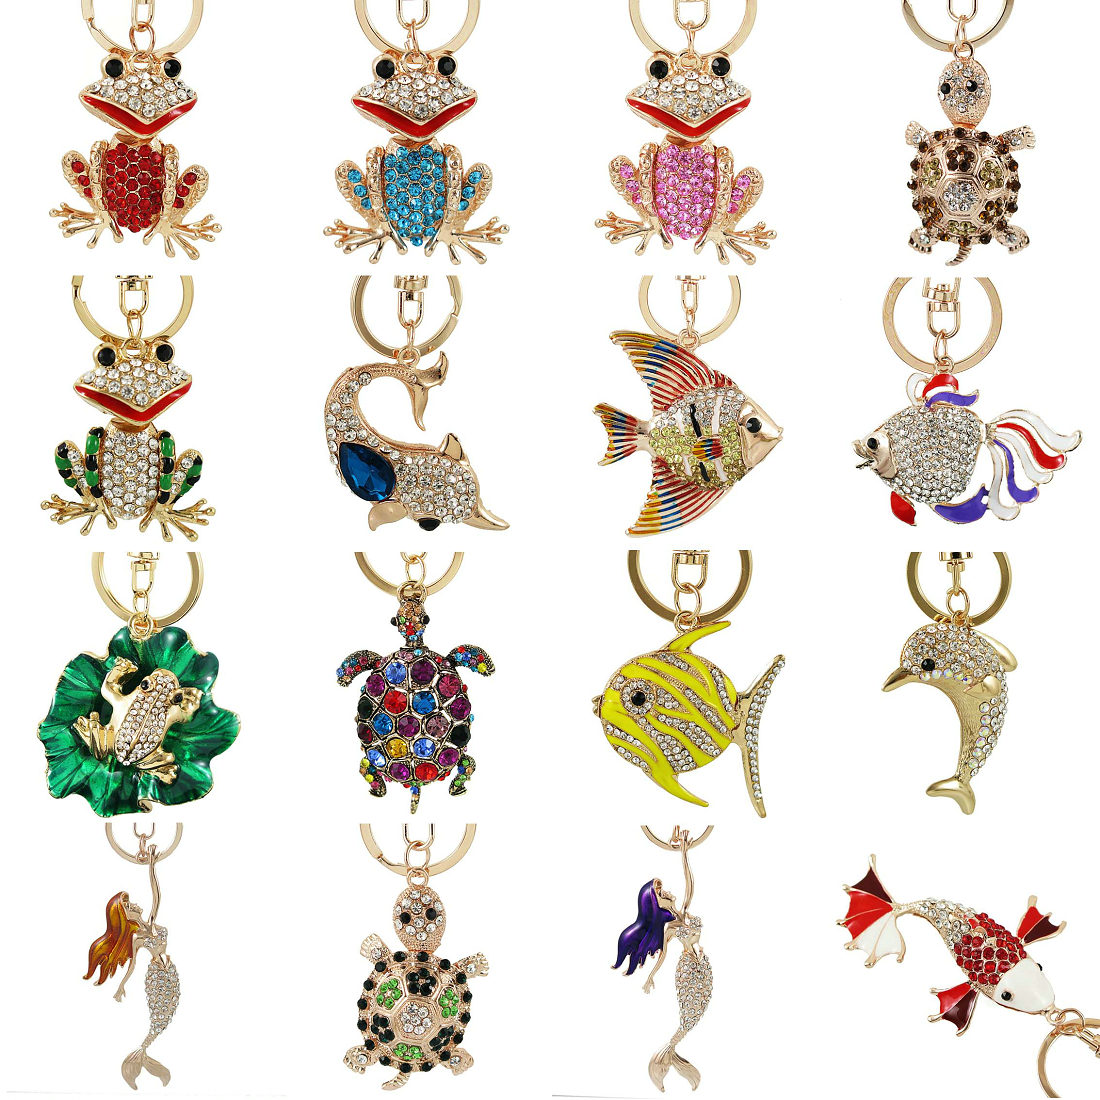 Exquisite Enamel Crystal Fish Frog Turtle Key Chains Holder Bag Buckle HandBag Pendant For Car Keyrings KeyChains Jewelry